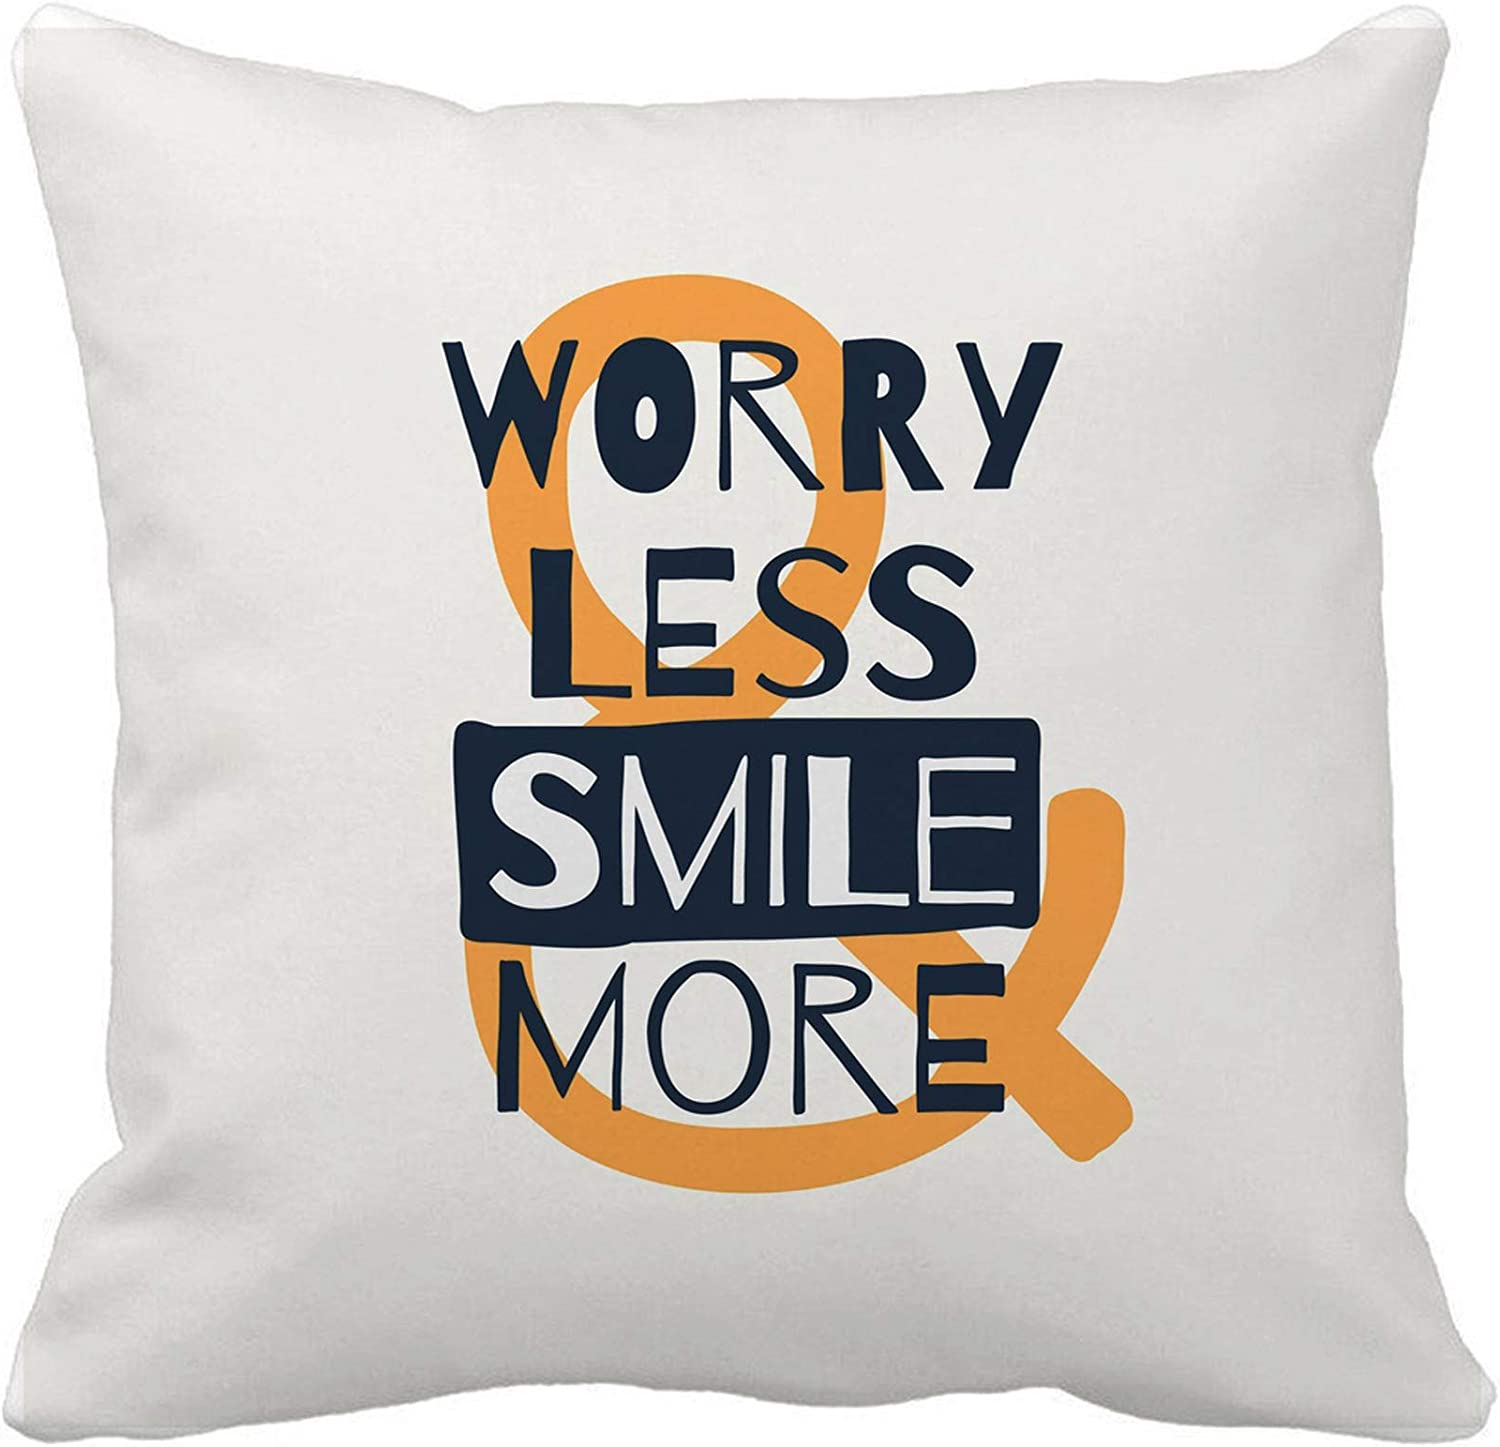 Amazon Com Awowee Throw Pillow Cover Believe Worry Less Smile More Motivational Quote Black Cry 16x16 Inches Pillowcase Home Decorative Square Pillow Case Cushion Cover Home Kitchen